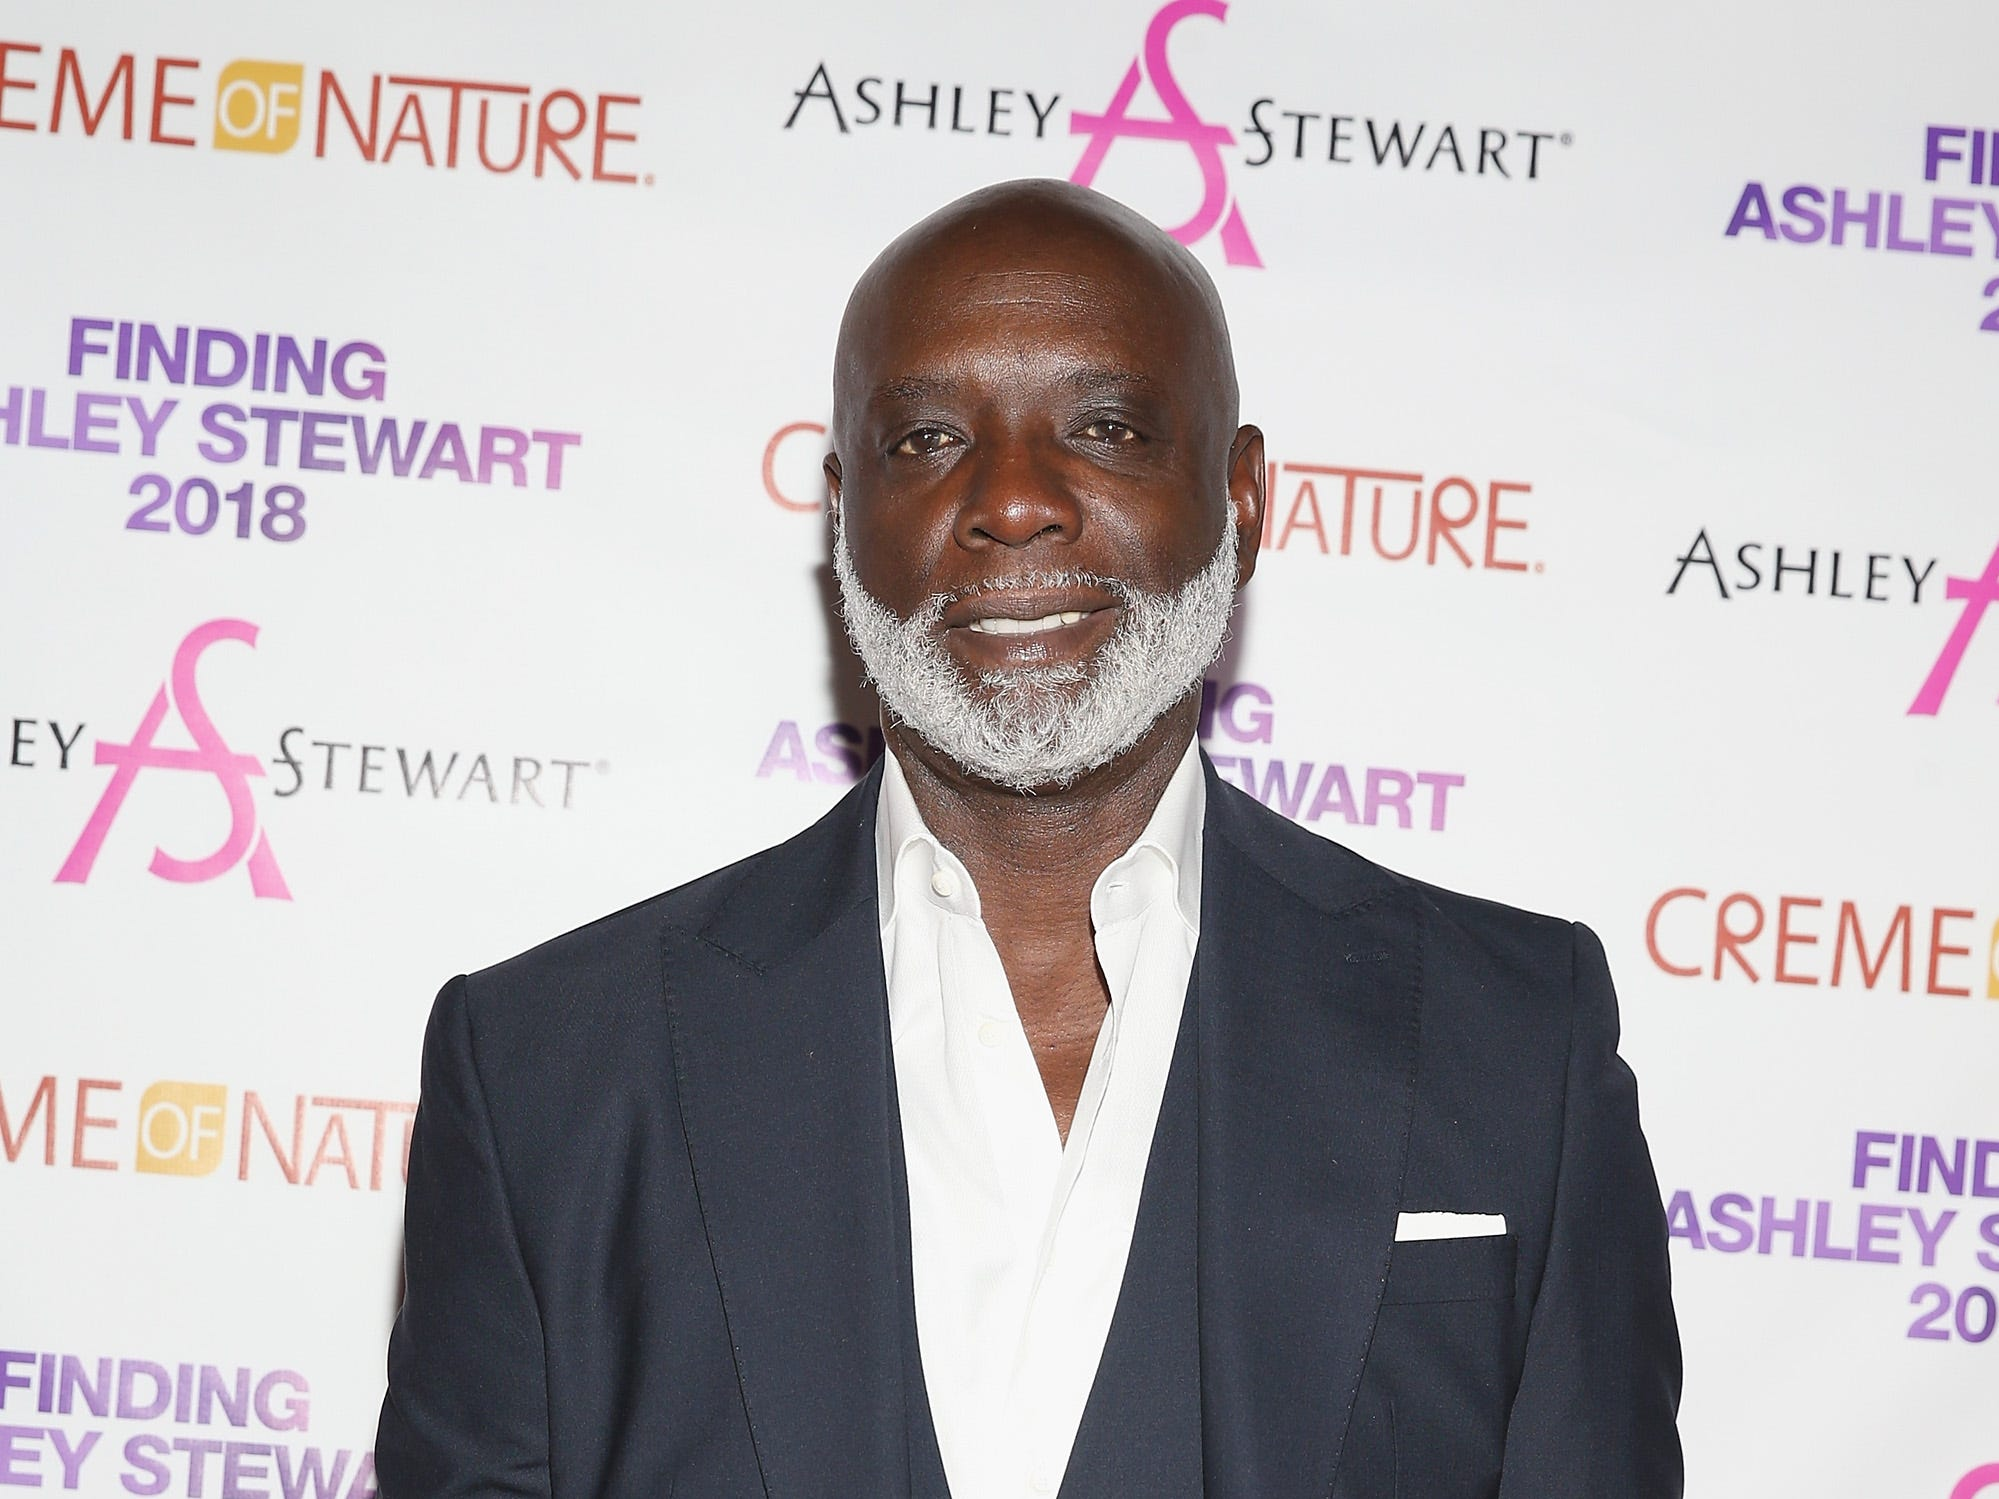 BROOKLYN, NY - SEPTEMBER 15:  Peter Thomas attends Finding Ashley Stewart 2018 at Kings Theatre on September 15, 2018 in Brooklyn, New York.  (Photo by Bennett Raglin/Getty Images for Ashley Stewart) ORG XMIT: 775226451 [Via MerlinFTP Drop]